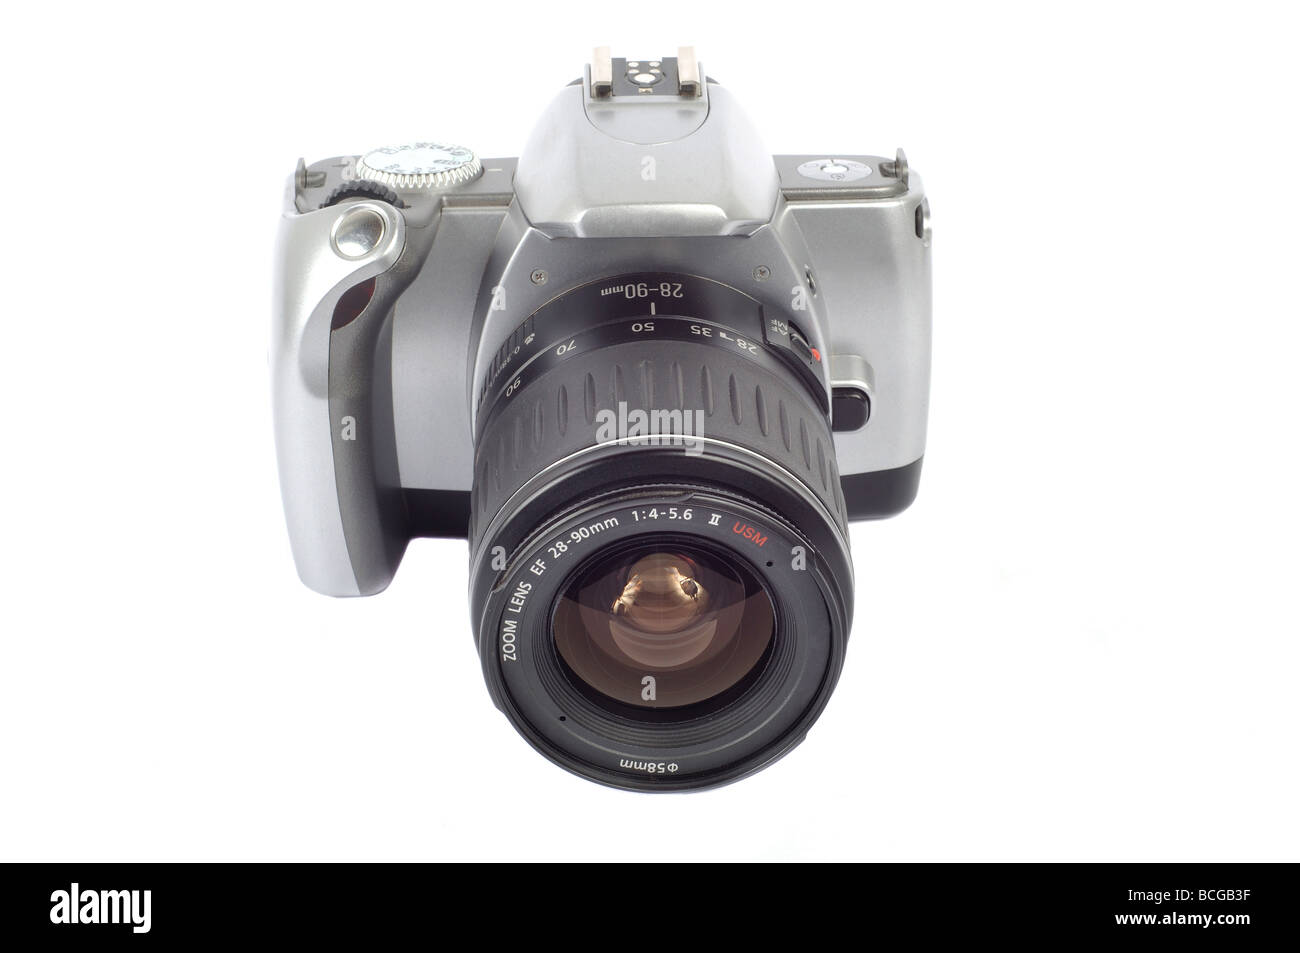 FIlm EOS SLR Camera - Stock Image